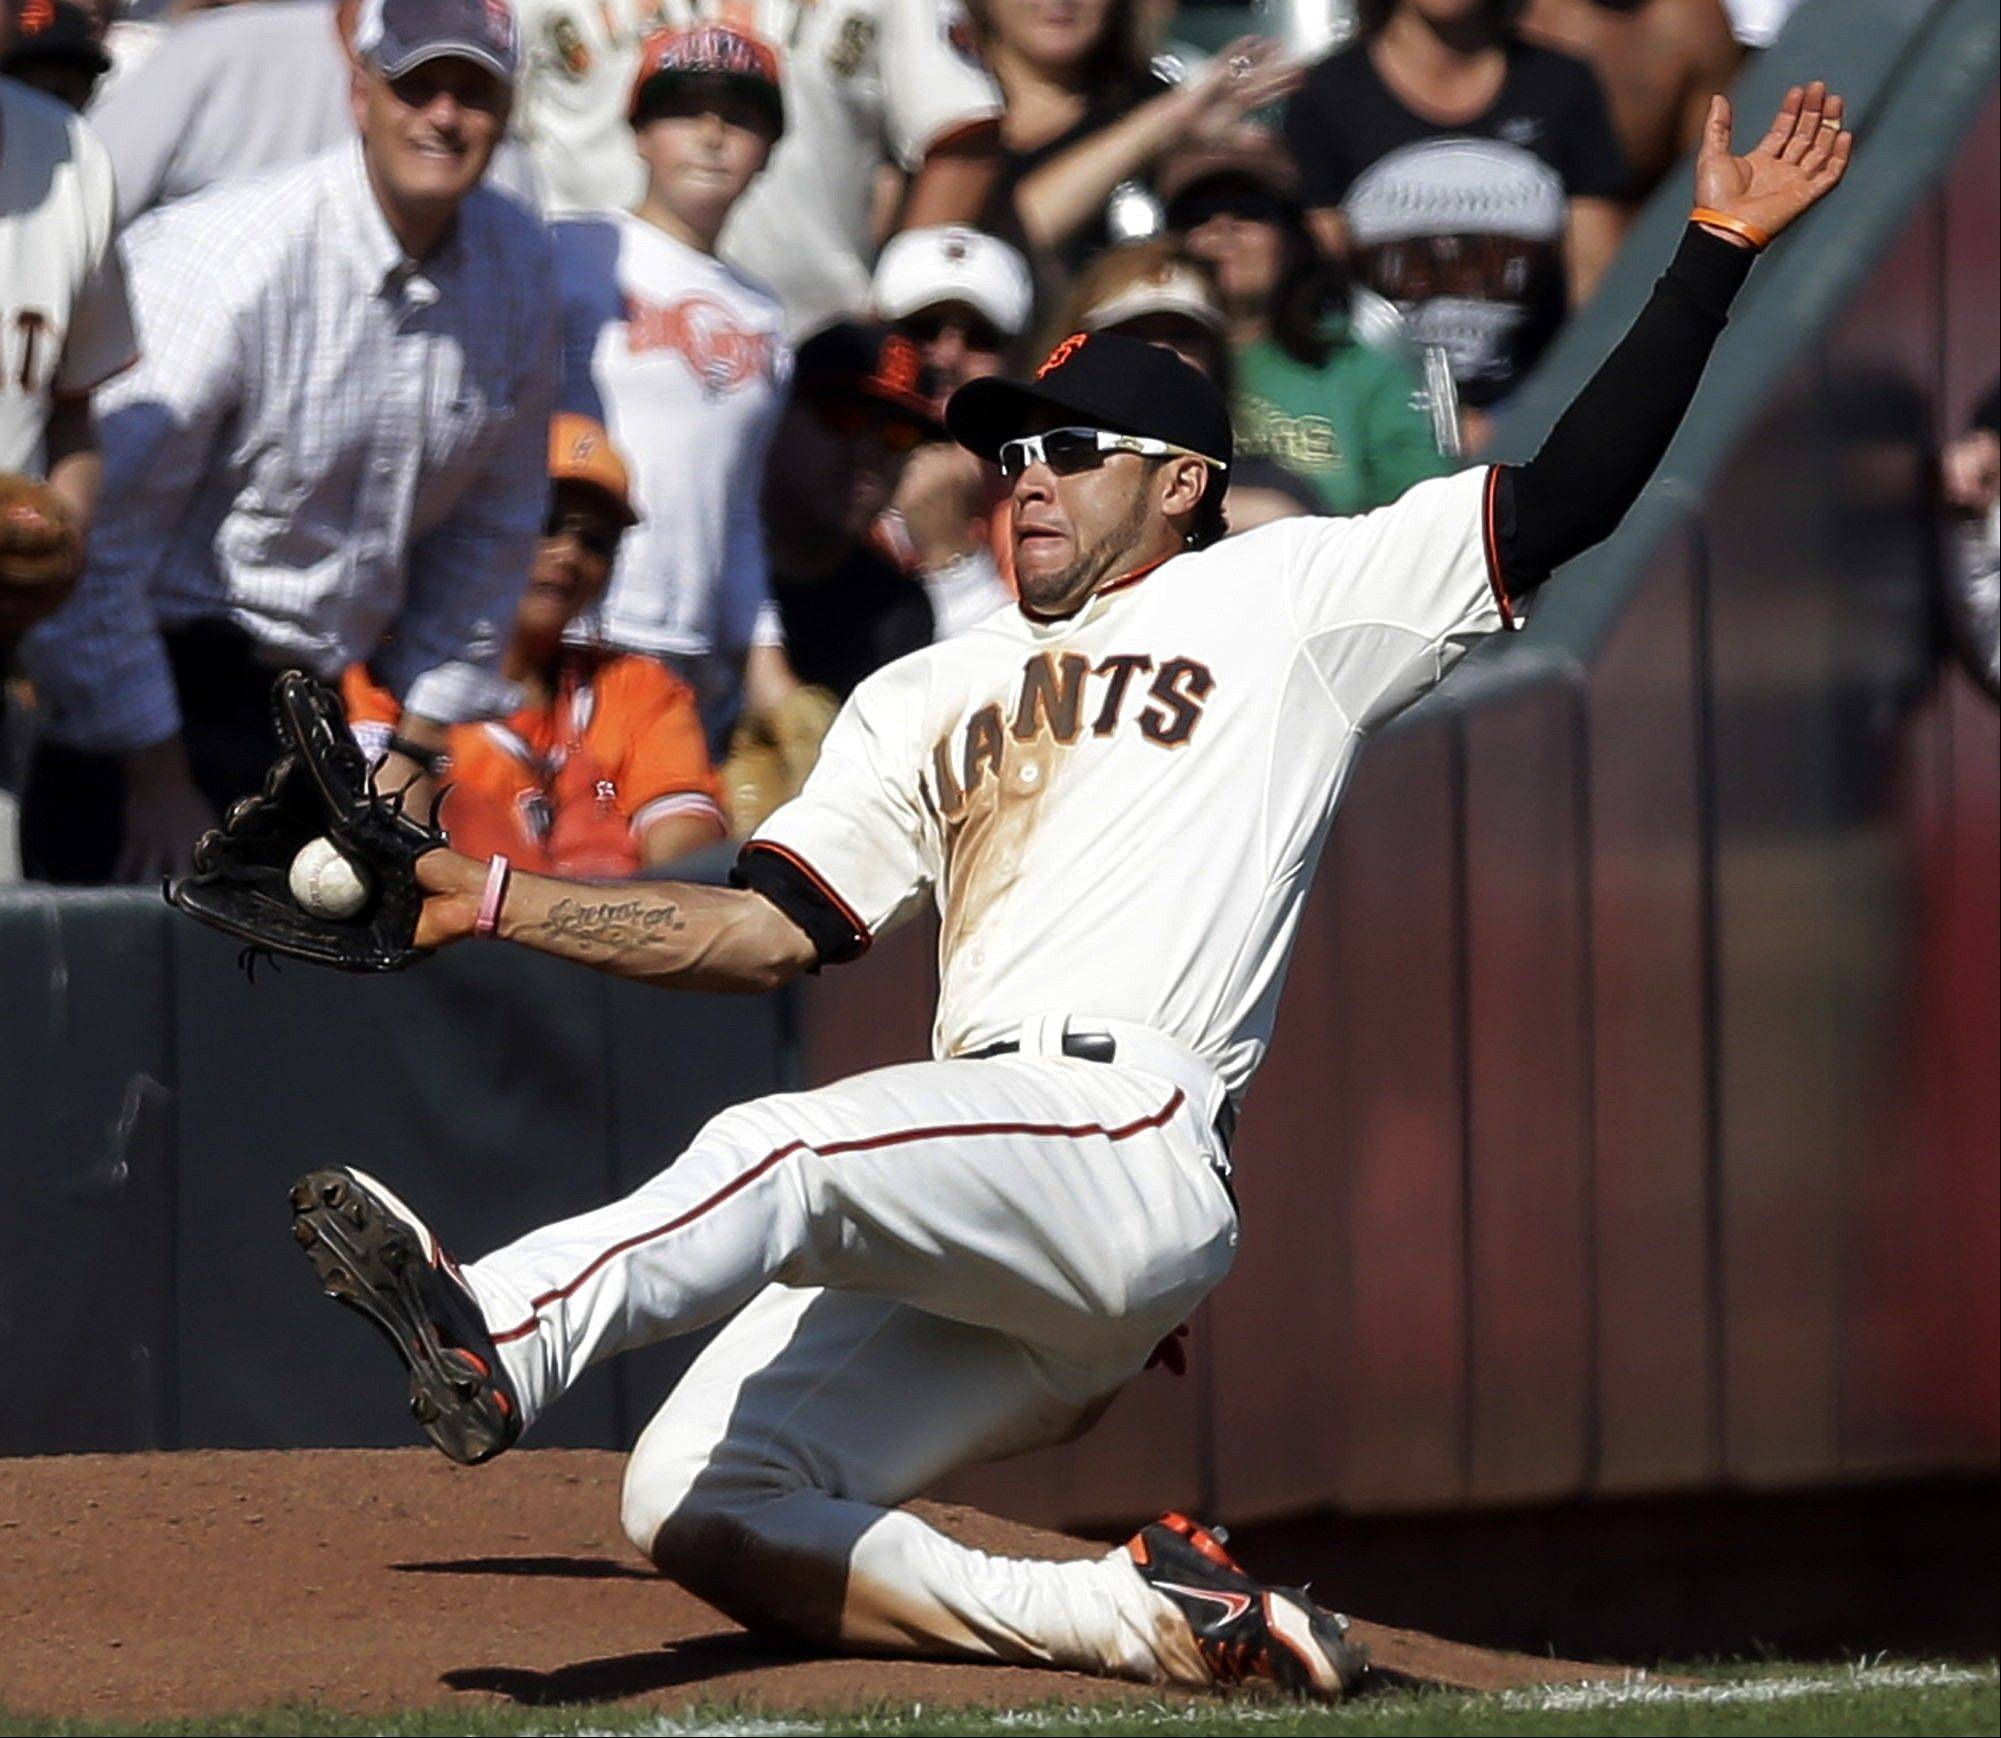 Giants left fielder Gregor Blanco makes a sliding catch on a pop fly by the Diamondbacks' Adam Eaton during the ninth inning Thursday in San Francisco.